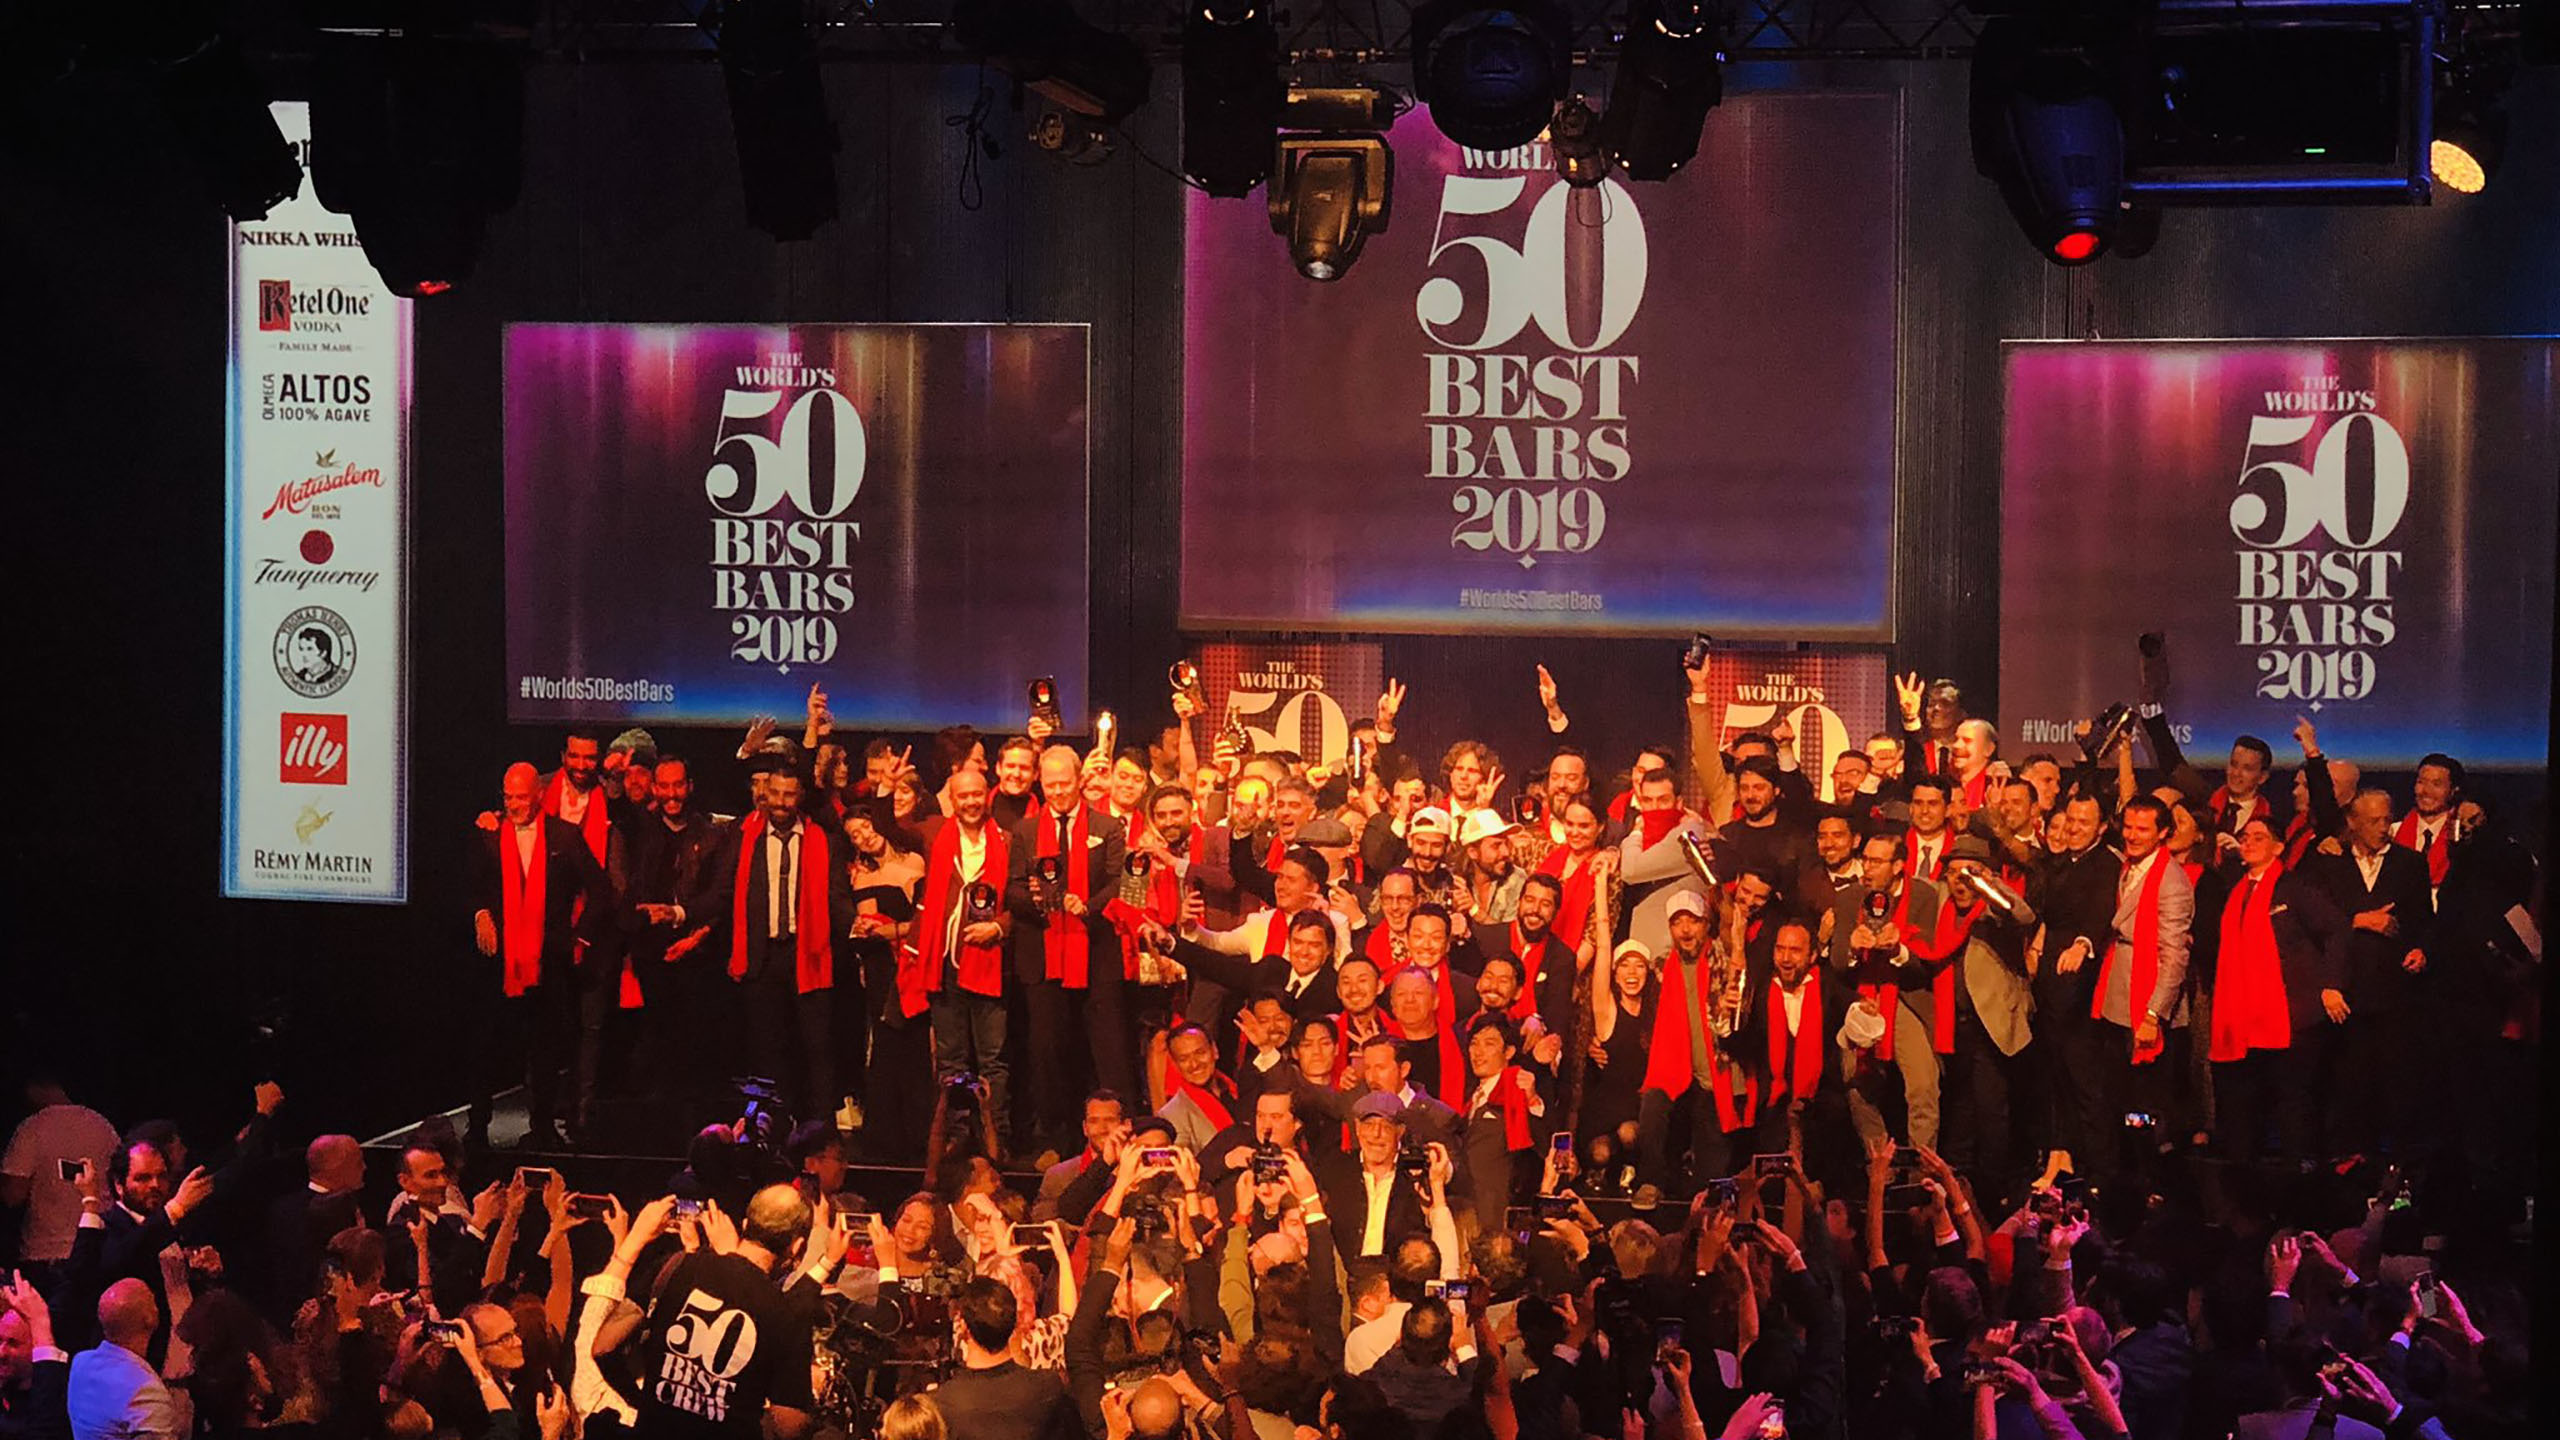 50 Best Bars, premios, ceremonia